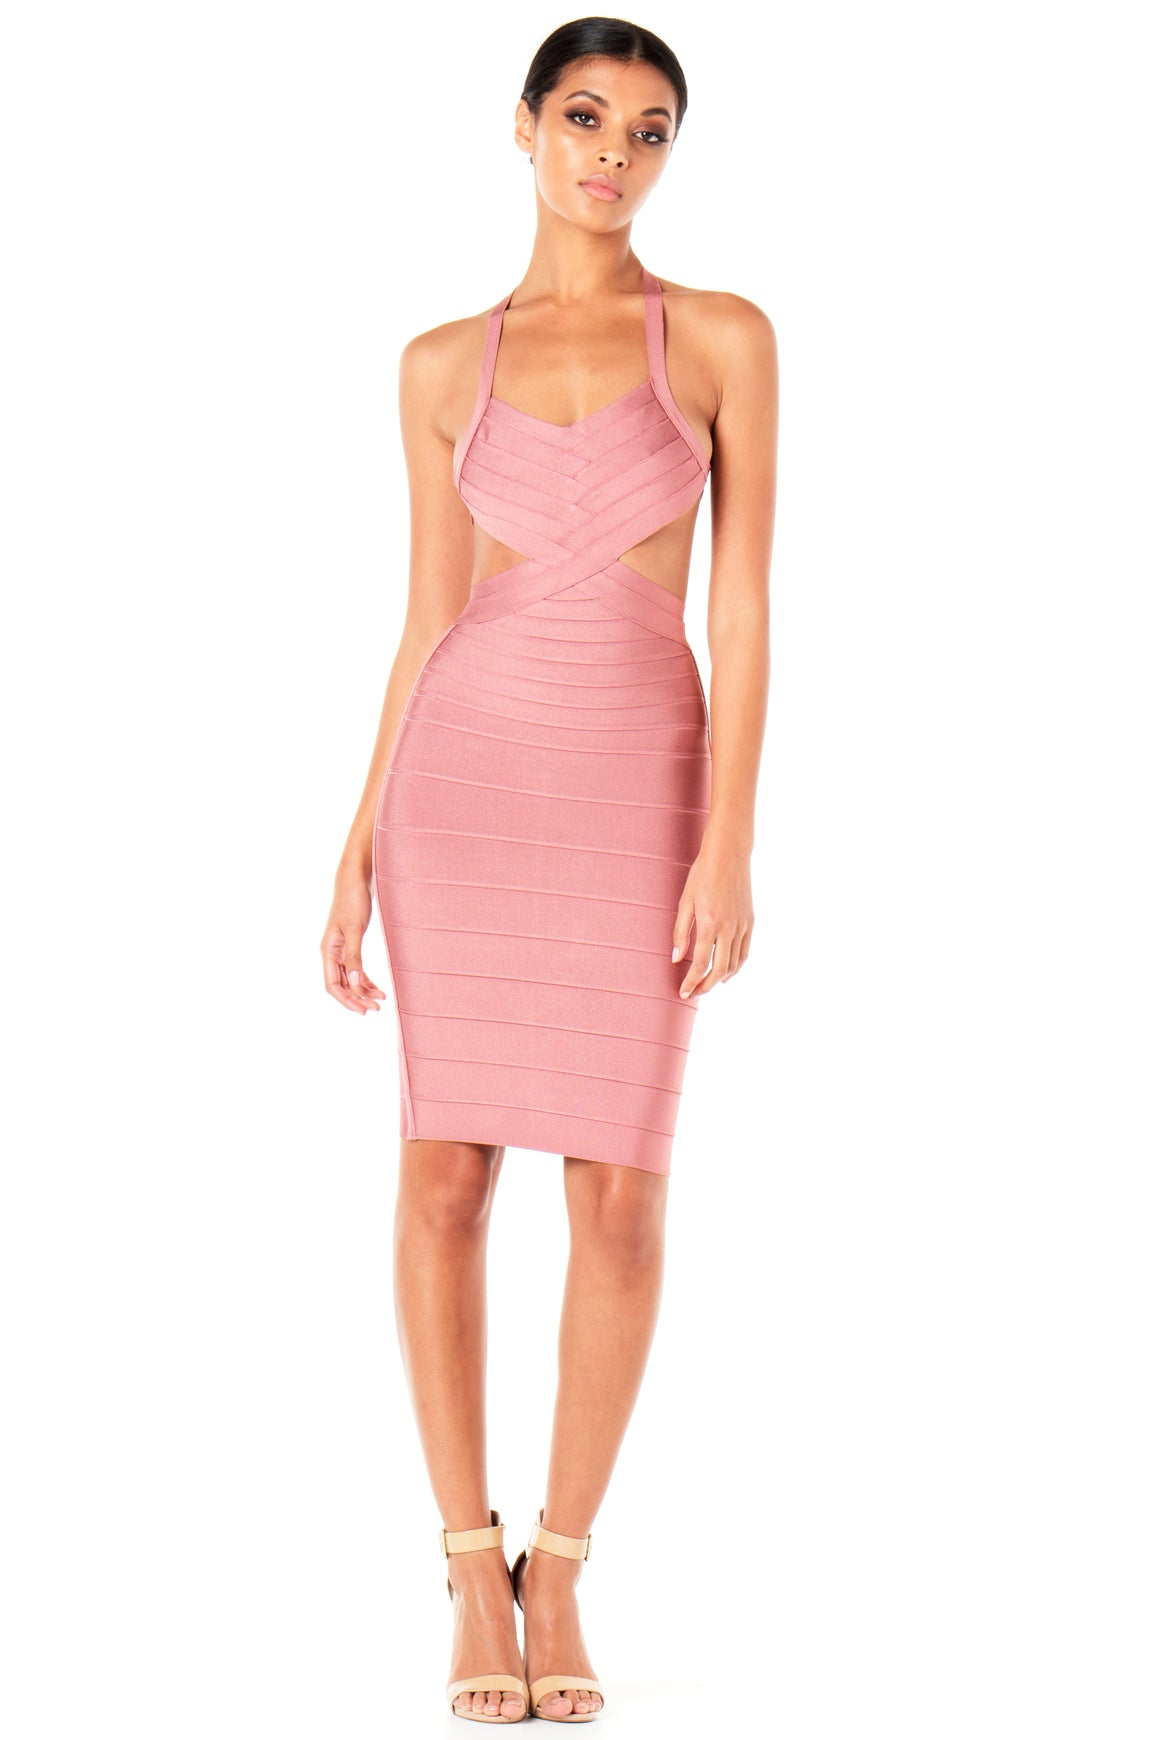 Mila Cutout Bandage Dress - Blush [SAMPLE SALE]